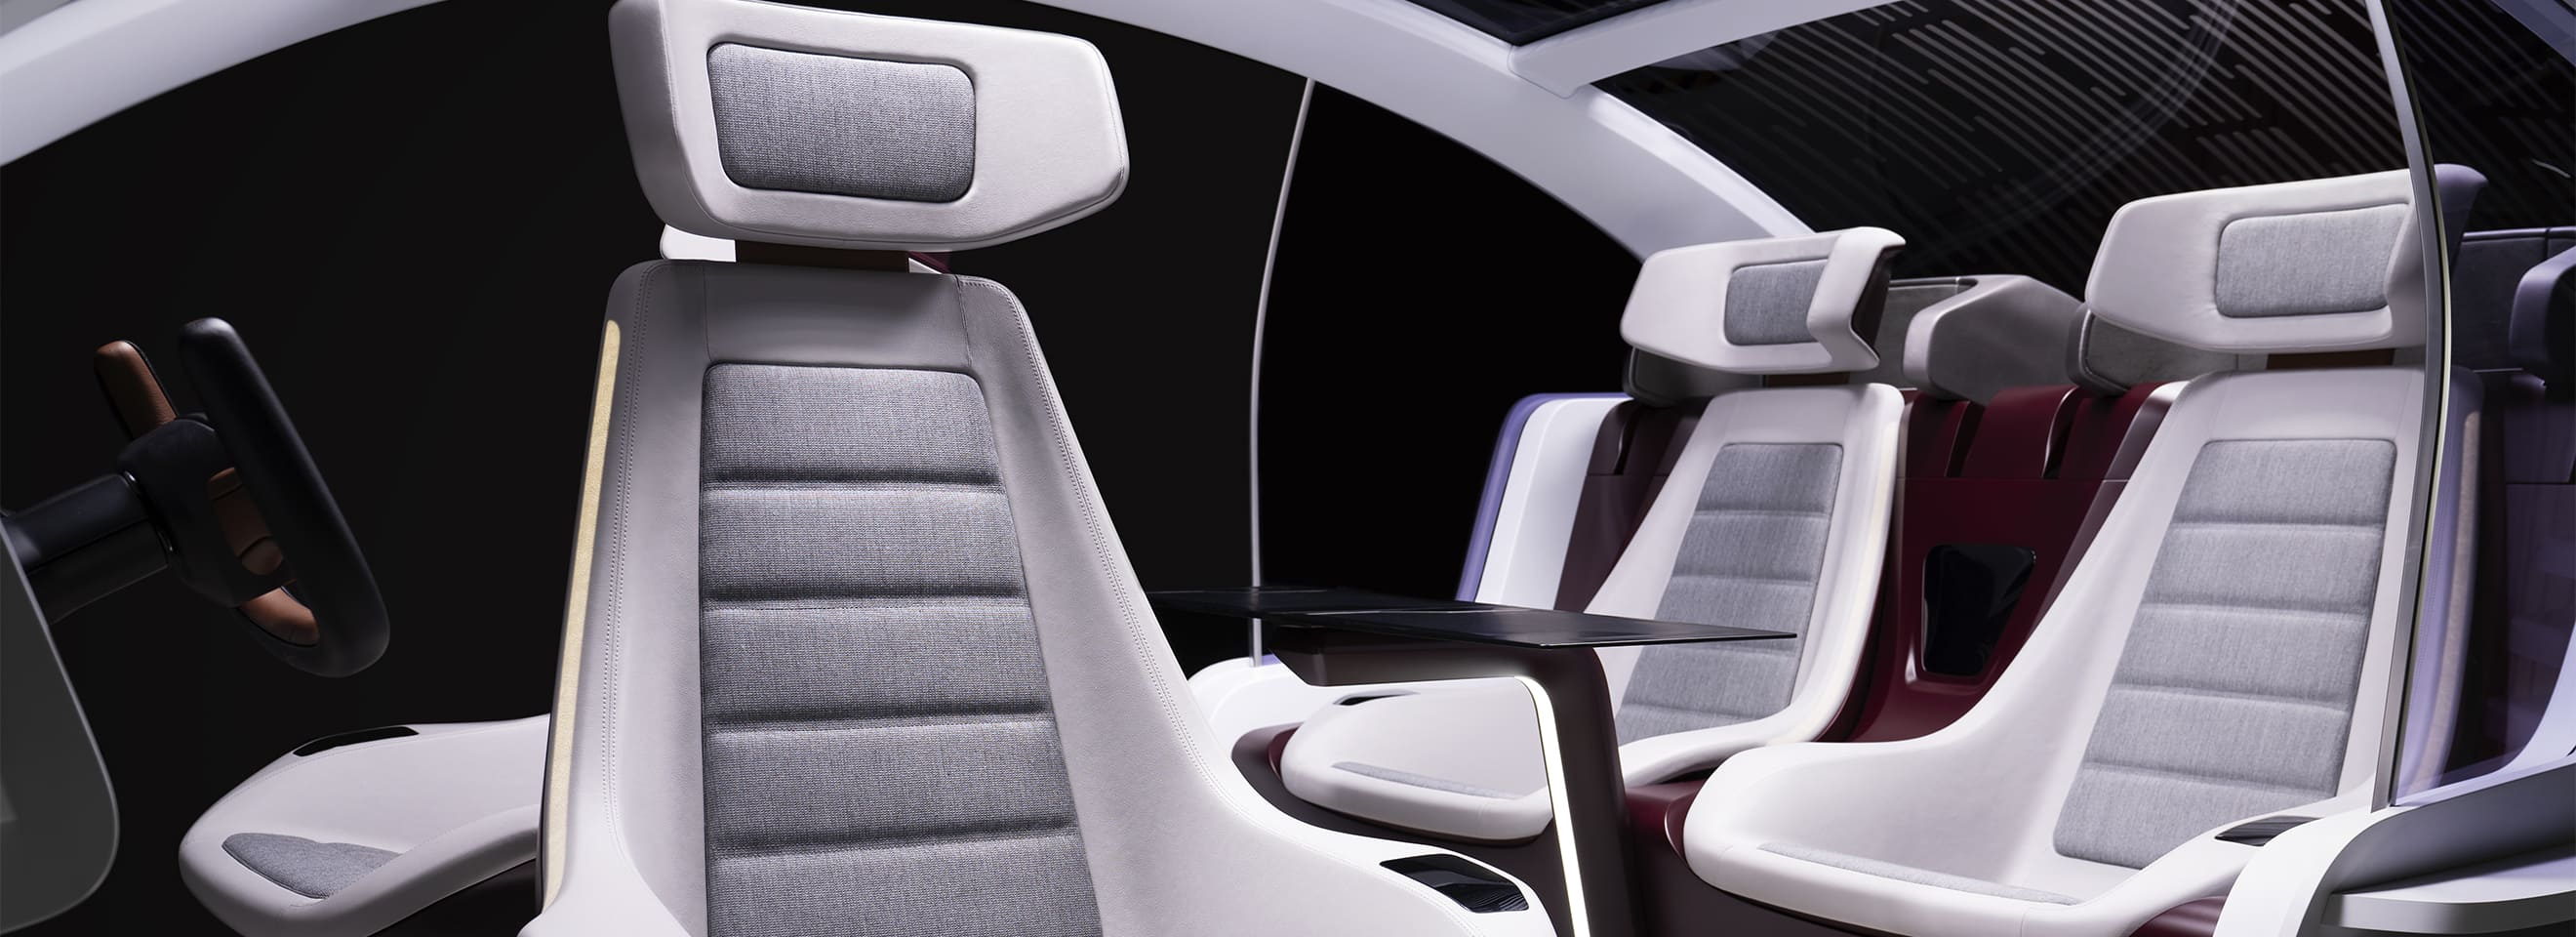 Smart polycarbonate material solutions for seamless mobility